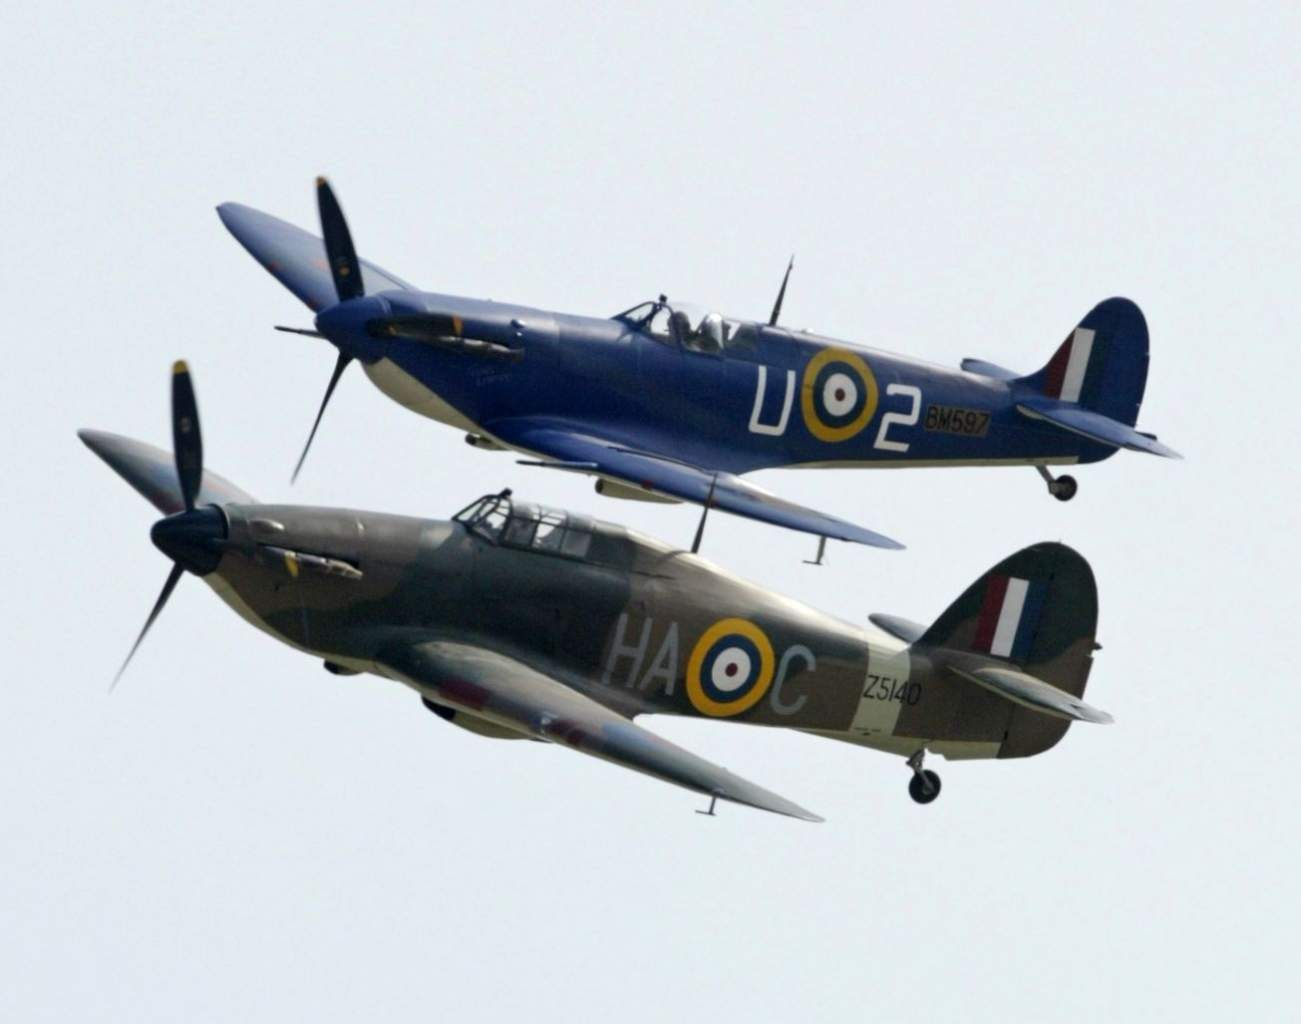 Heroes: How the British Royal Navy Fought the Nazi Air Force